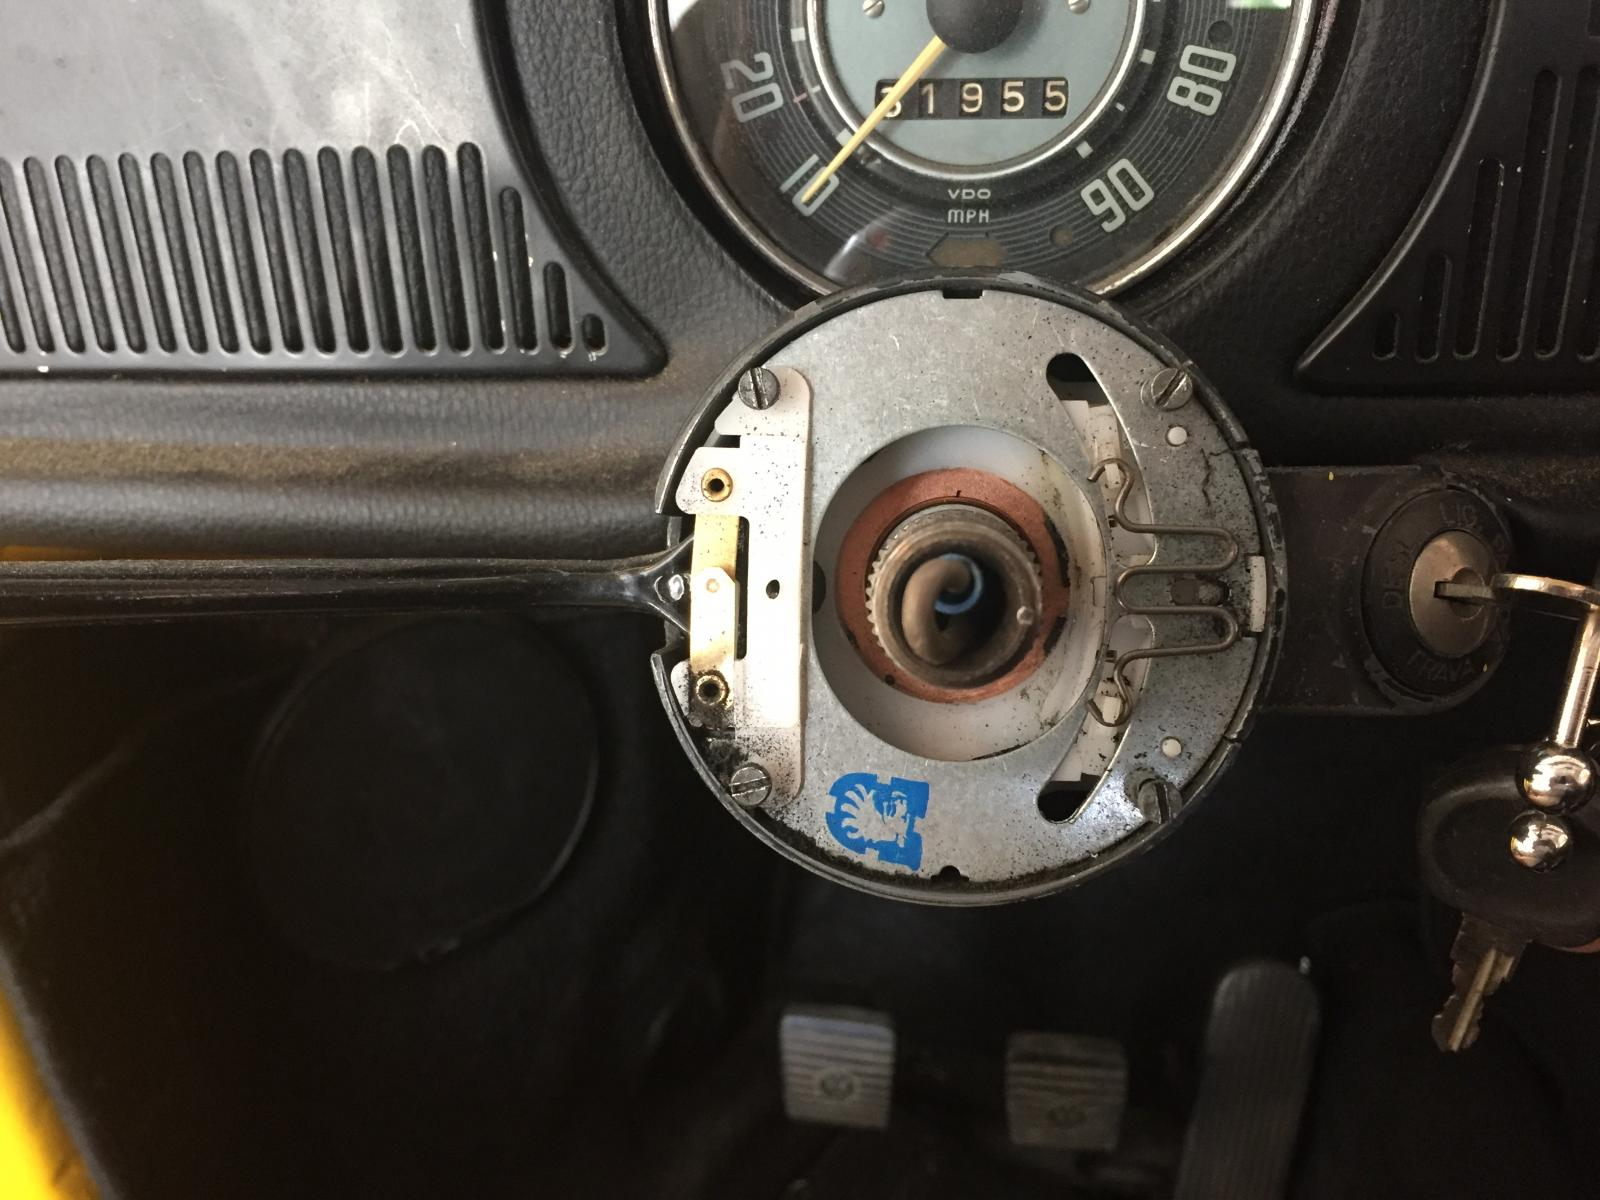 Turn Signal Switch For 72-79 Volkswagen Beetle Super Beetle